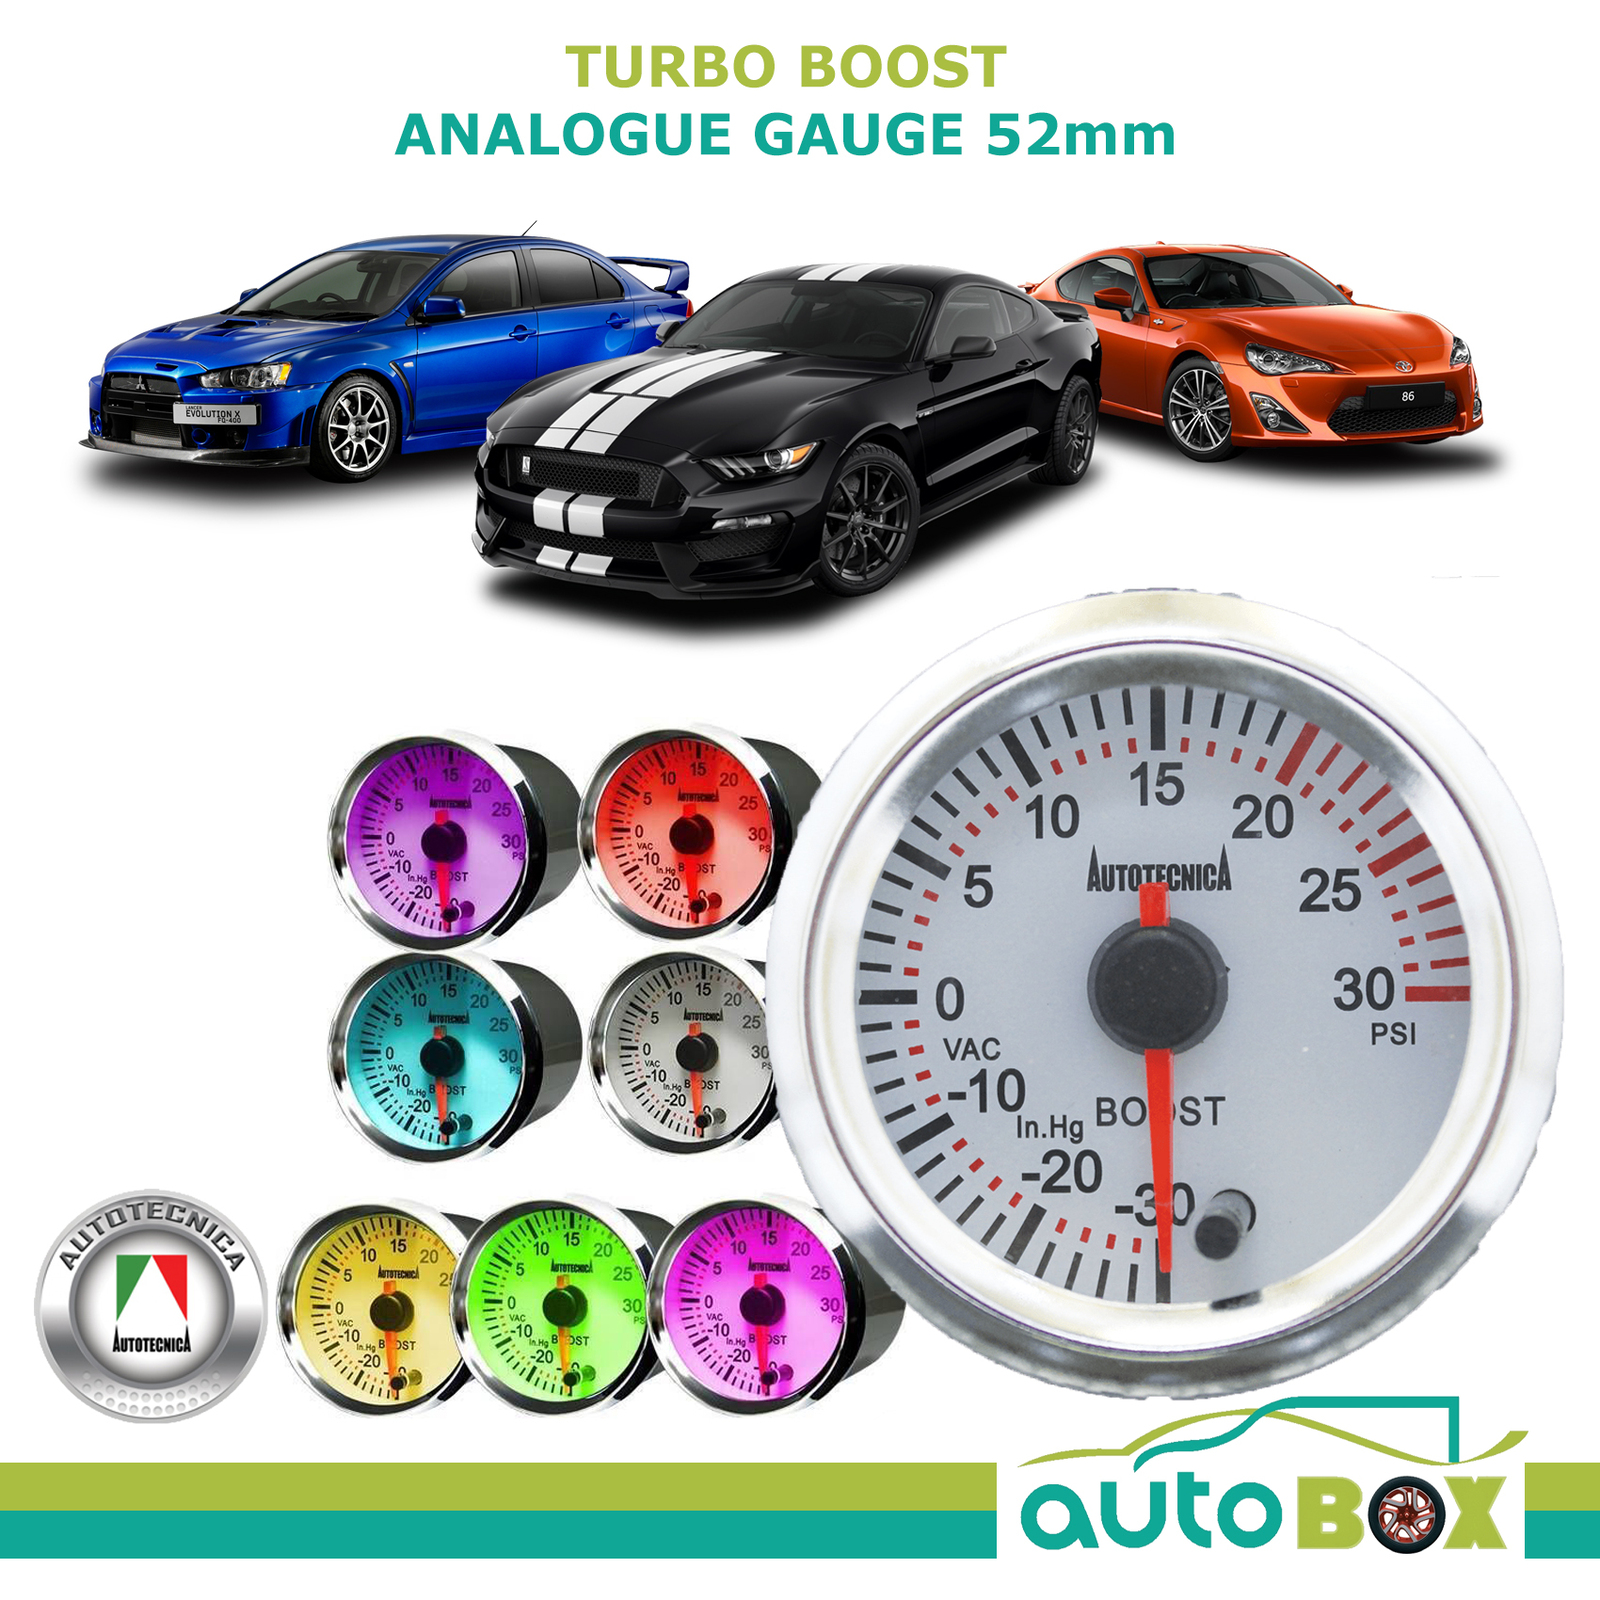 TURBO BOOST White Electronic Analogue Gauge 52mm by Autotecnica 7 Colours  12V